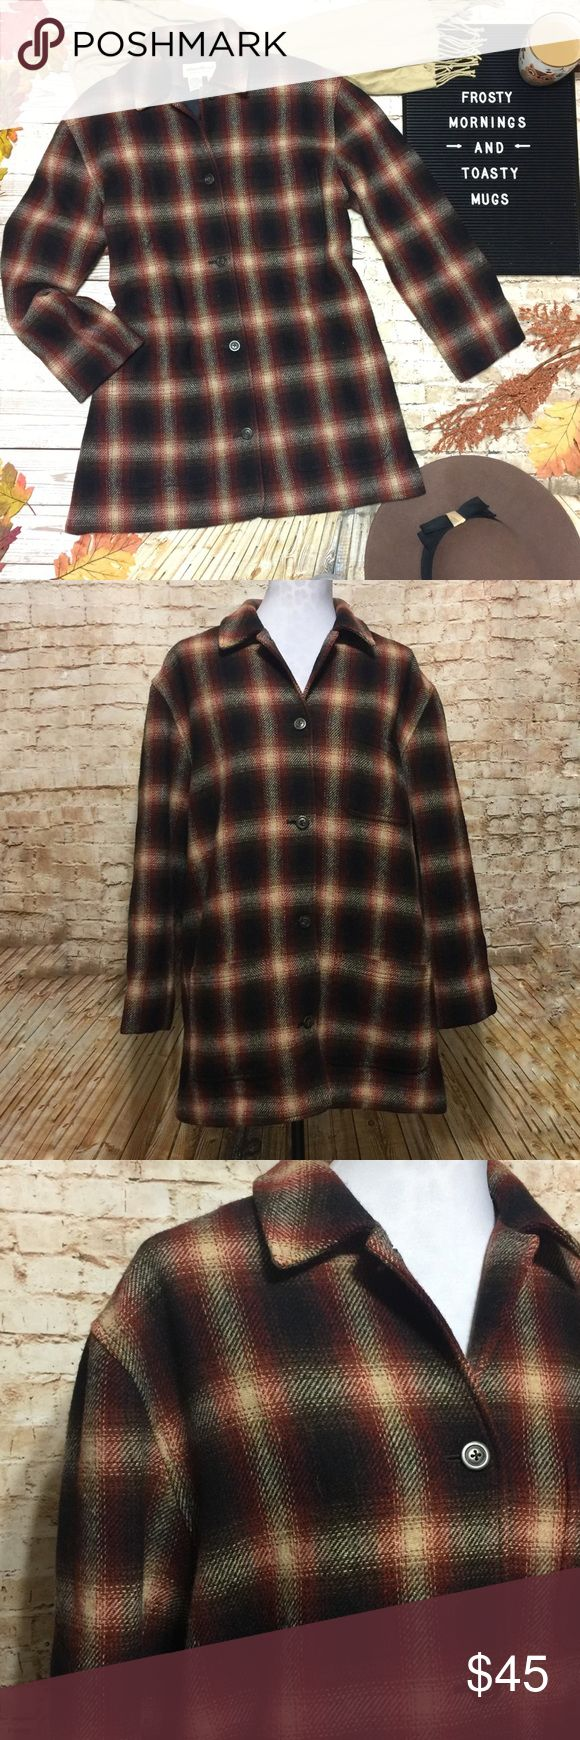 """Eddie Bauer Plaid Wool-Blend Coat Beautiful wool blend coat by Eddie Bauer in a gorgeous tartan plaid. Black, cream, tan and rust colored plaid. Button front. Collar. Three pockets. Longer length hits mid-thigh depending on your height. Fully lined. 85% Wool and 15% nylon. Very warm. Flawless condition.   Measurements lying flat: • Bust: 23.5"""" from armpit to armpit  • Length: 32.5"""" Eddie Bauer Jackets & Coats Pea Coats"""